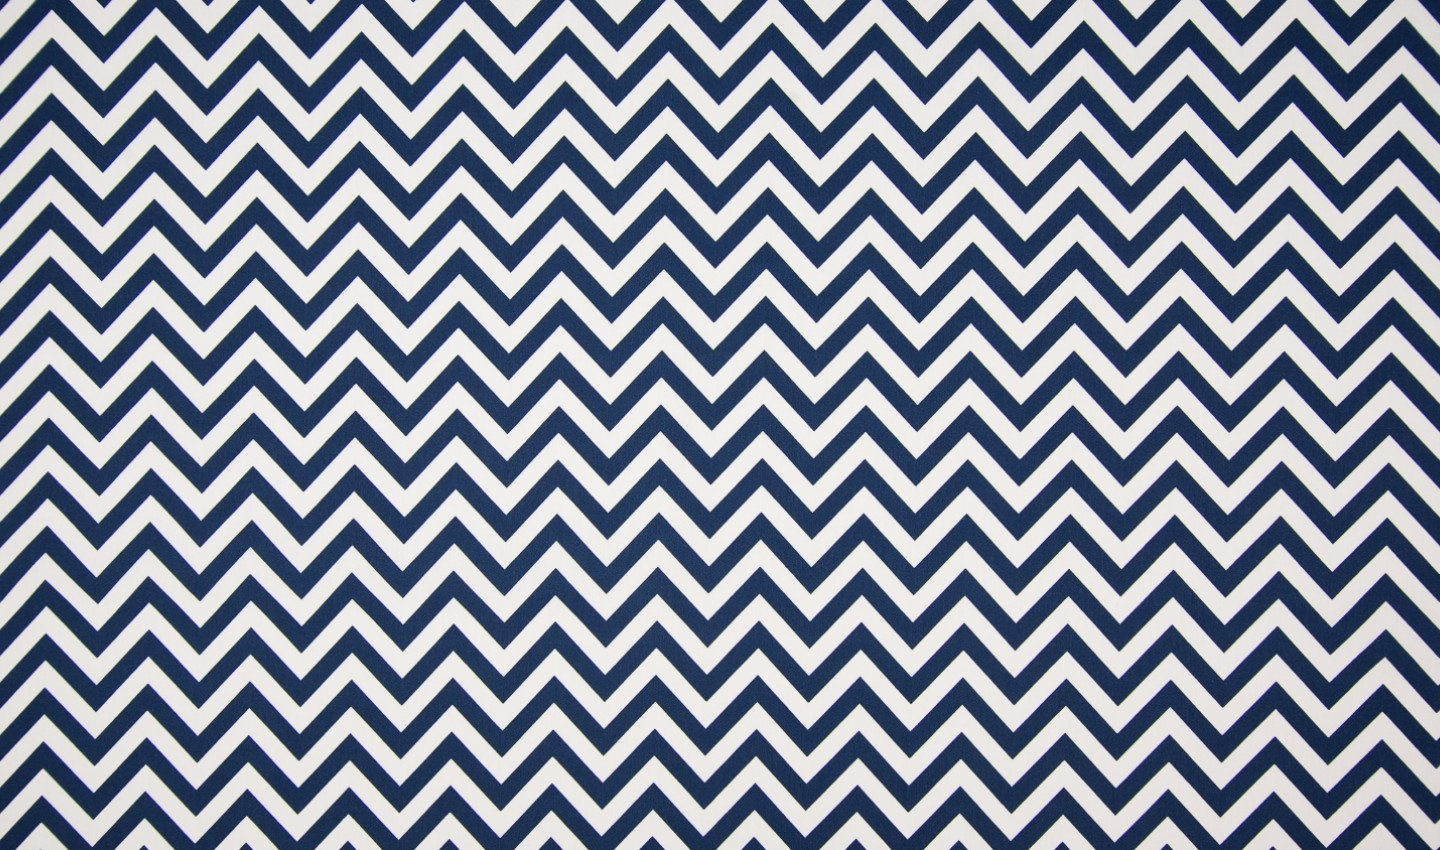 Herringbone - navy